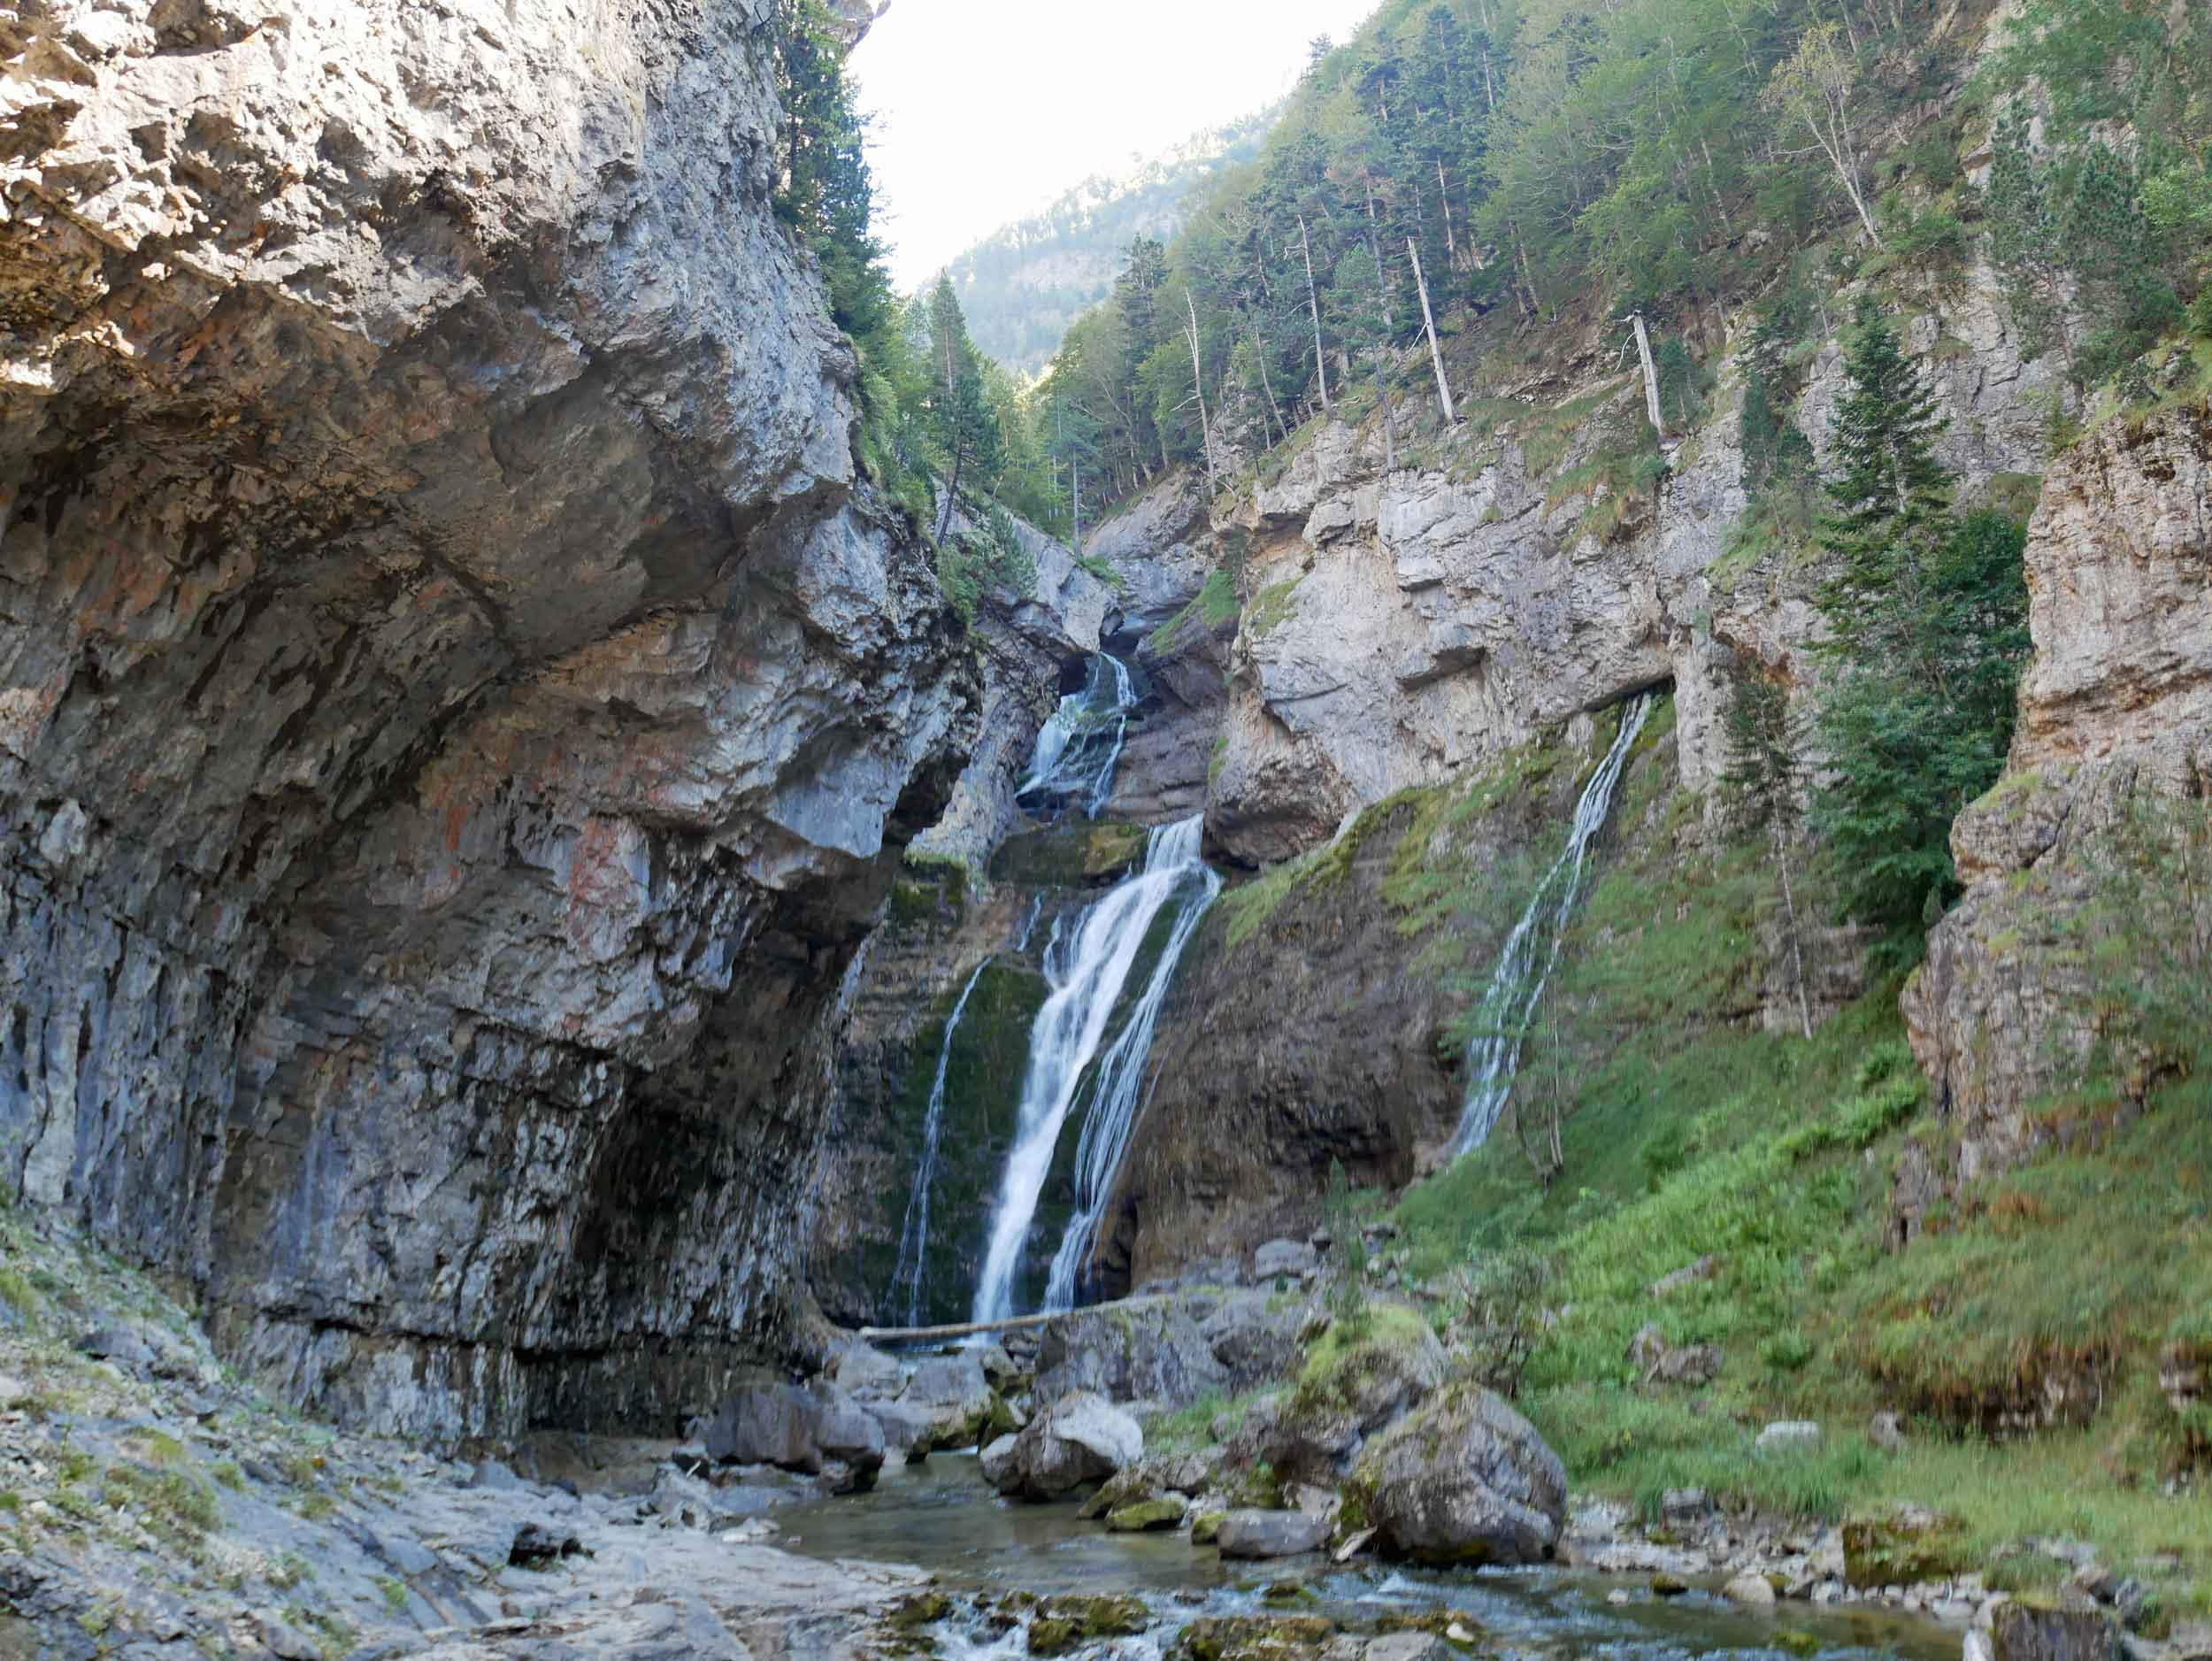 The Ordesa canyon formed over millions of years of erosion by the Rio Arazas, developing an impressive cascade of waterfalls along its course.